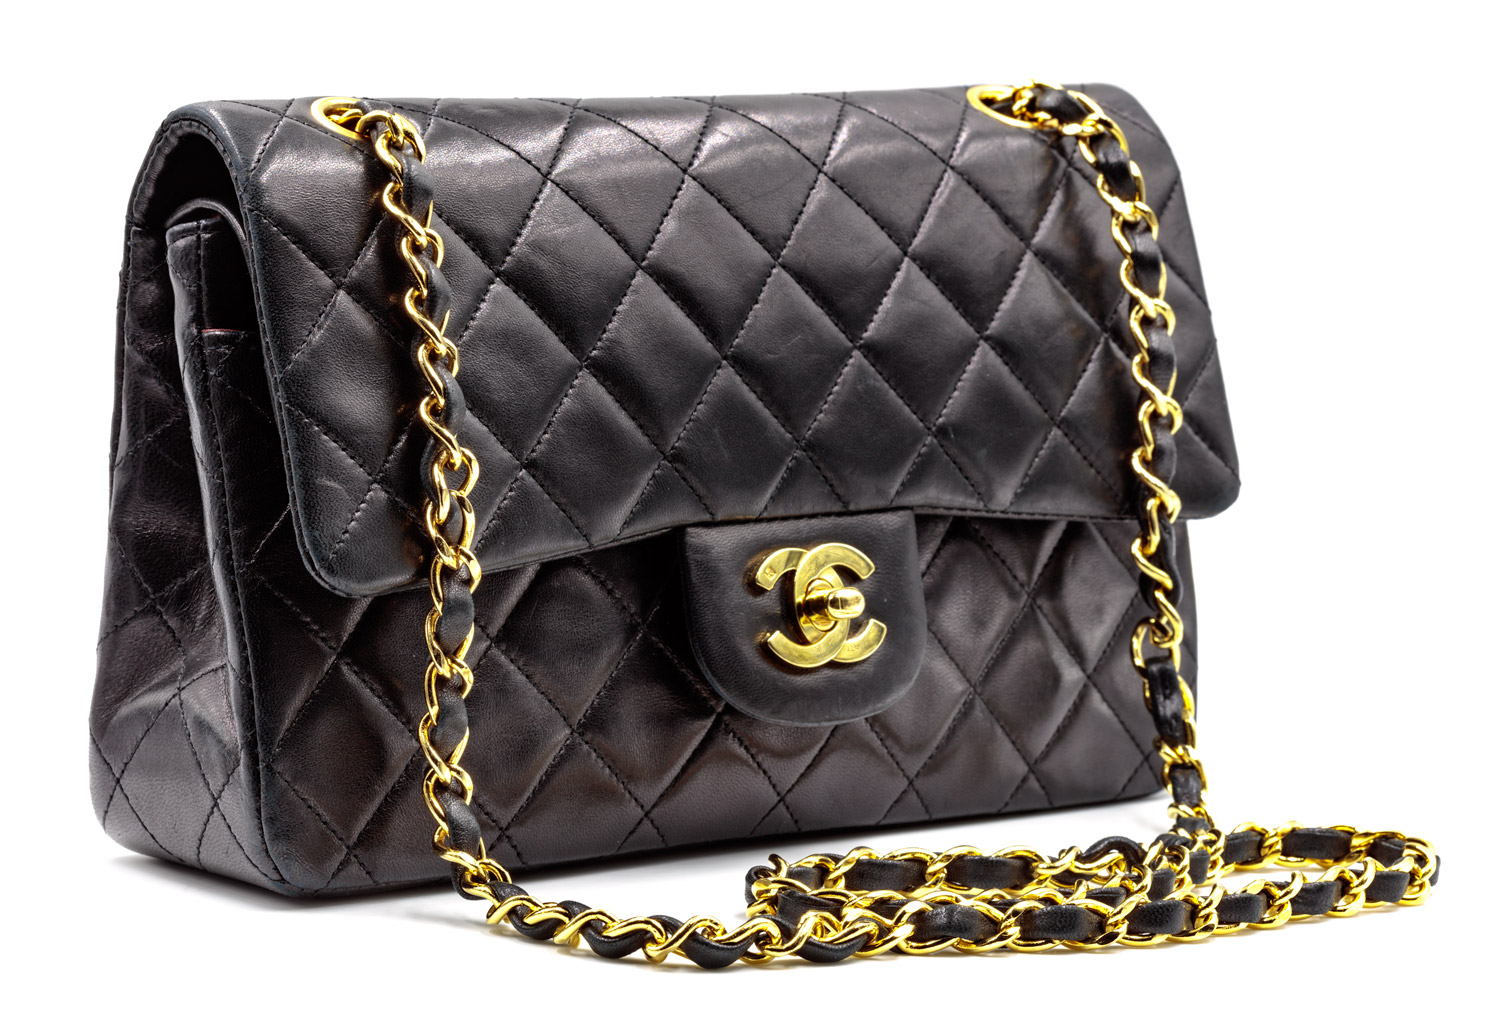 6728a09fabcc Chanel 2.55 Classic Black Quilted Lambskin. chanel-black-2.55-front.jpg